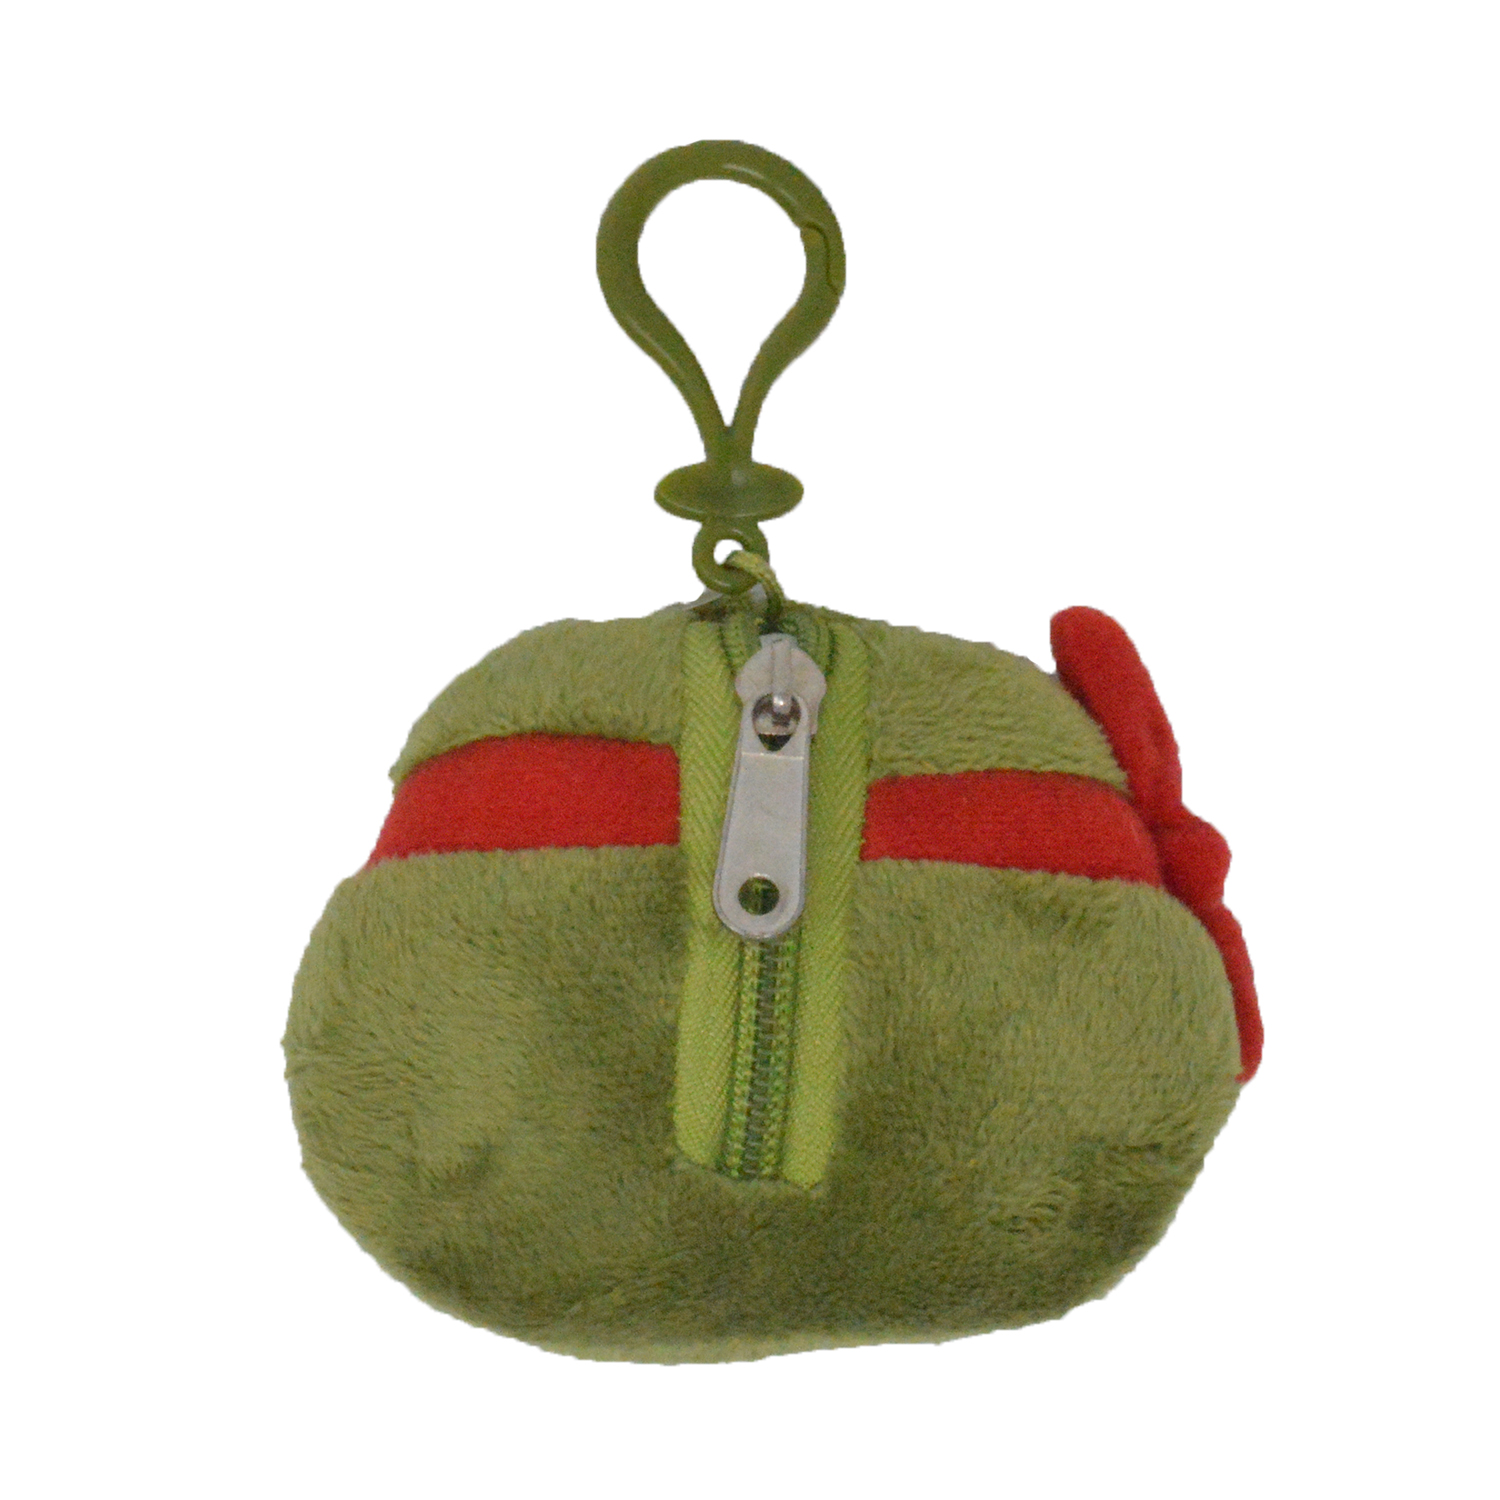 Cartoon-Plush-Coin-Clip-Toy-Bag-with-Zipper-for-Backpacks-Multiple-Styles thumbnail 40